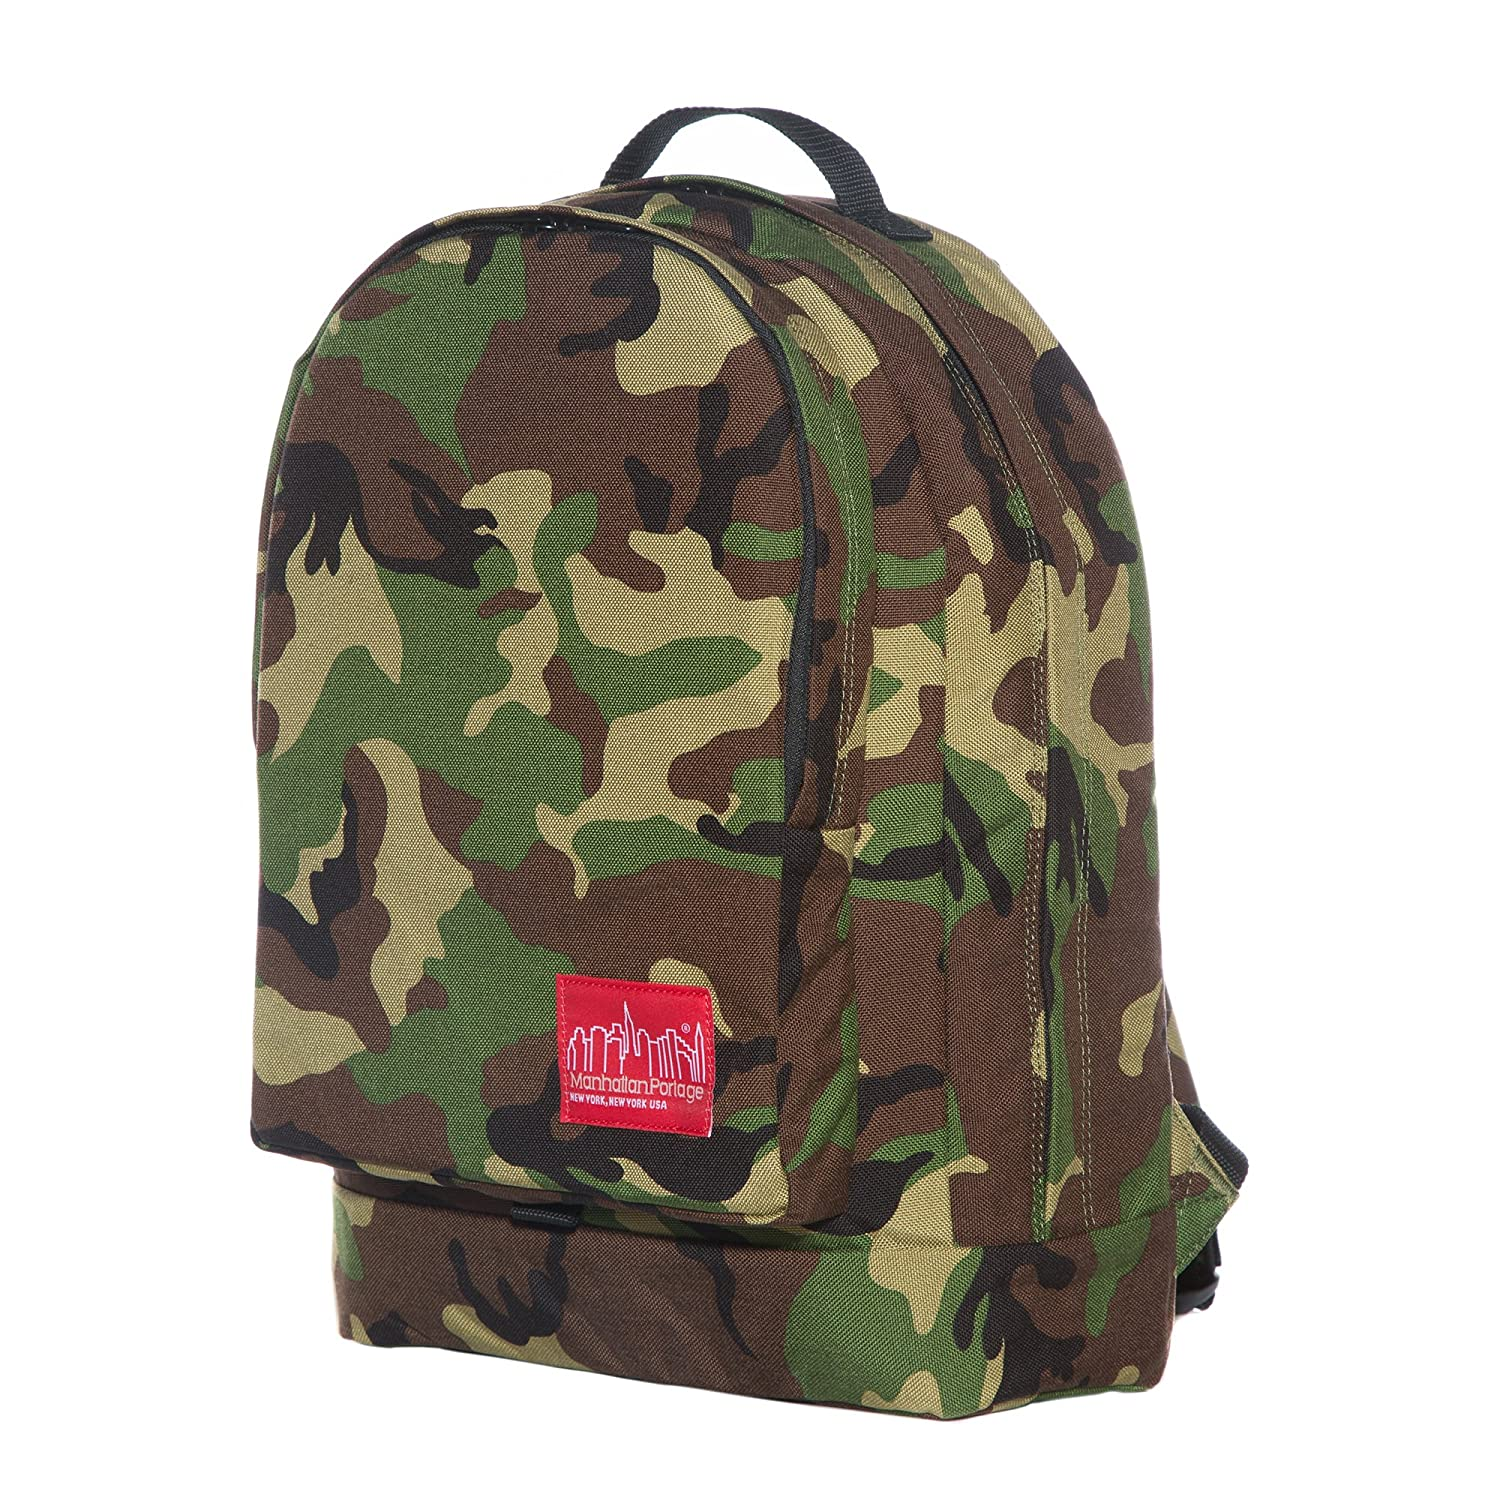 80%OFF Manhattan Portage Highbridge Backpack, Cam, One Size